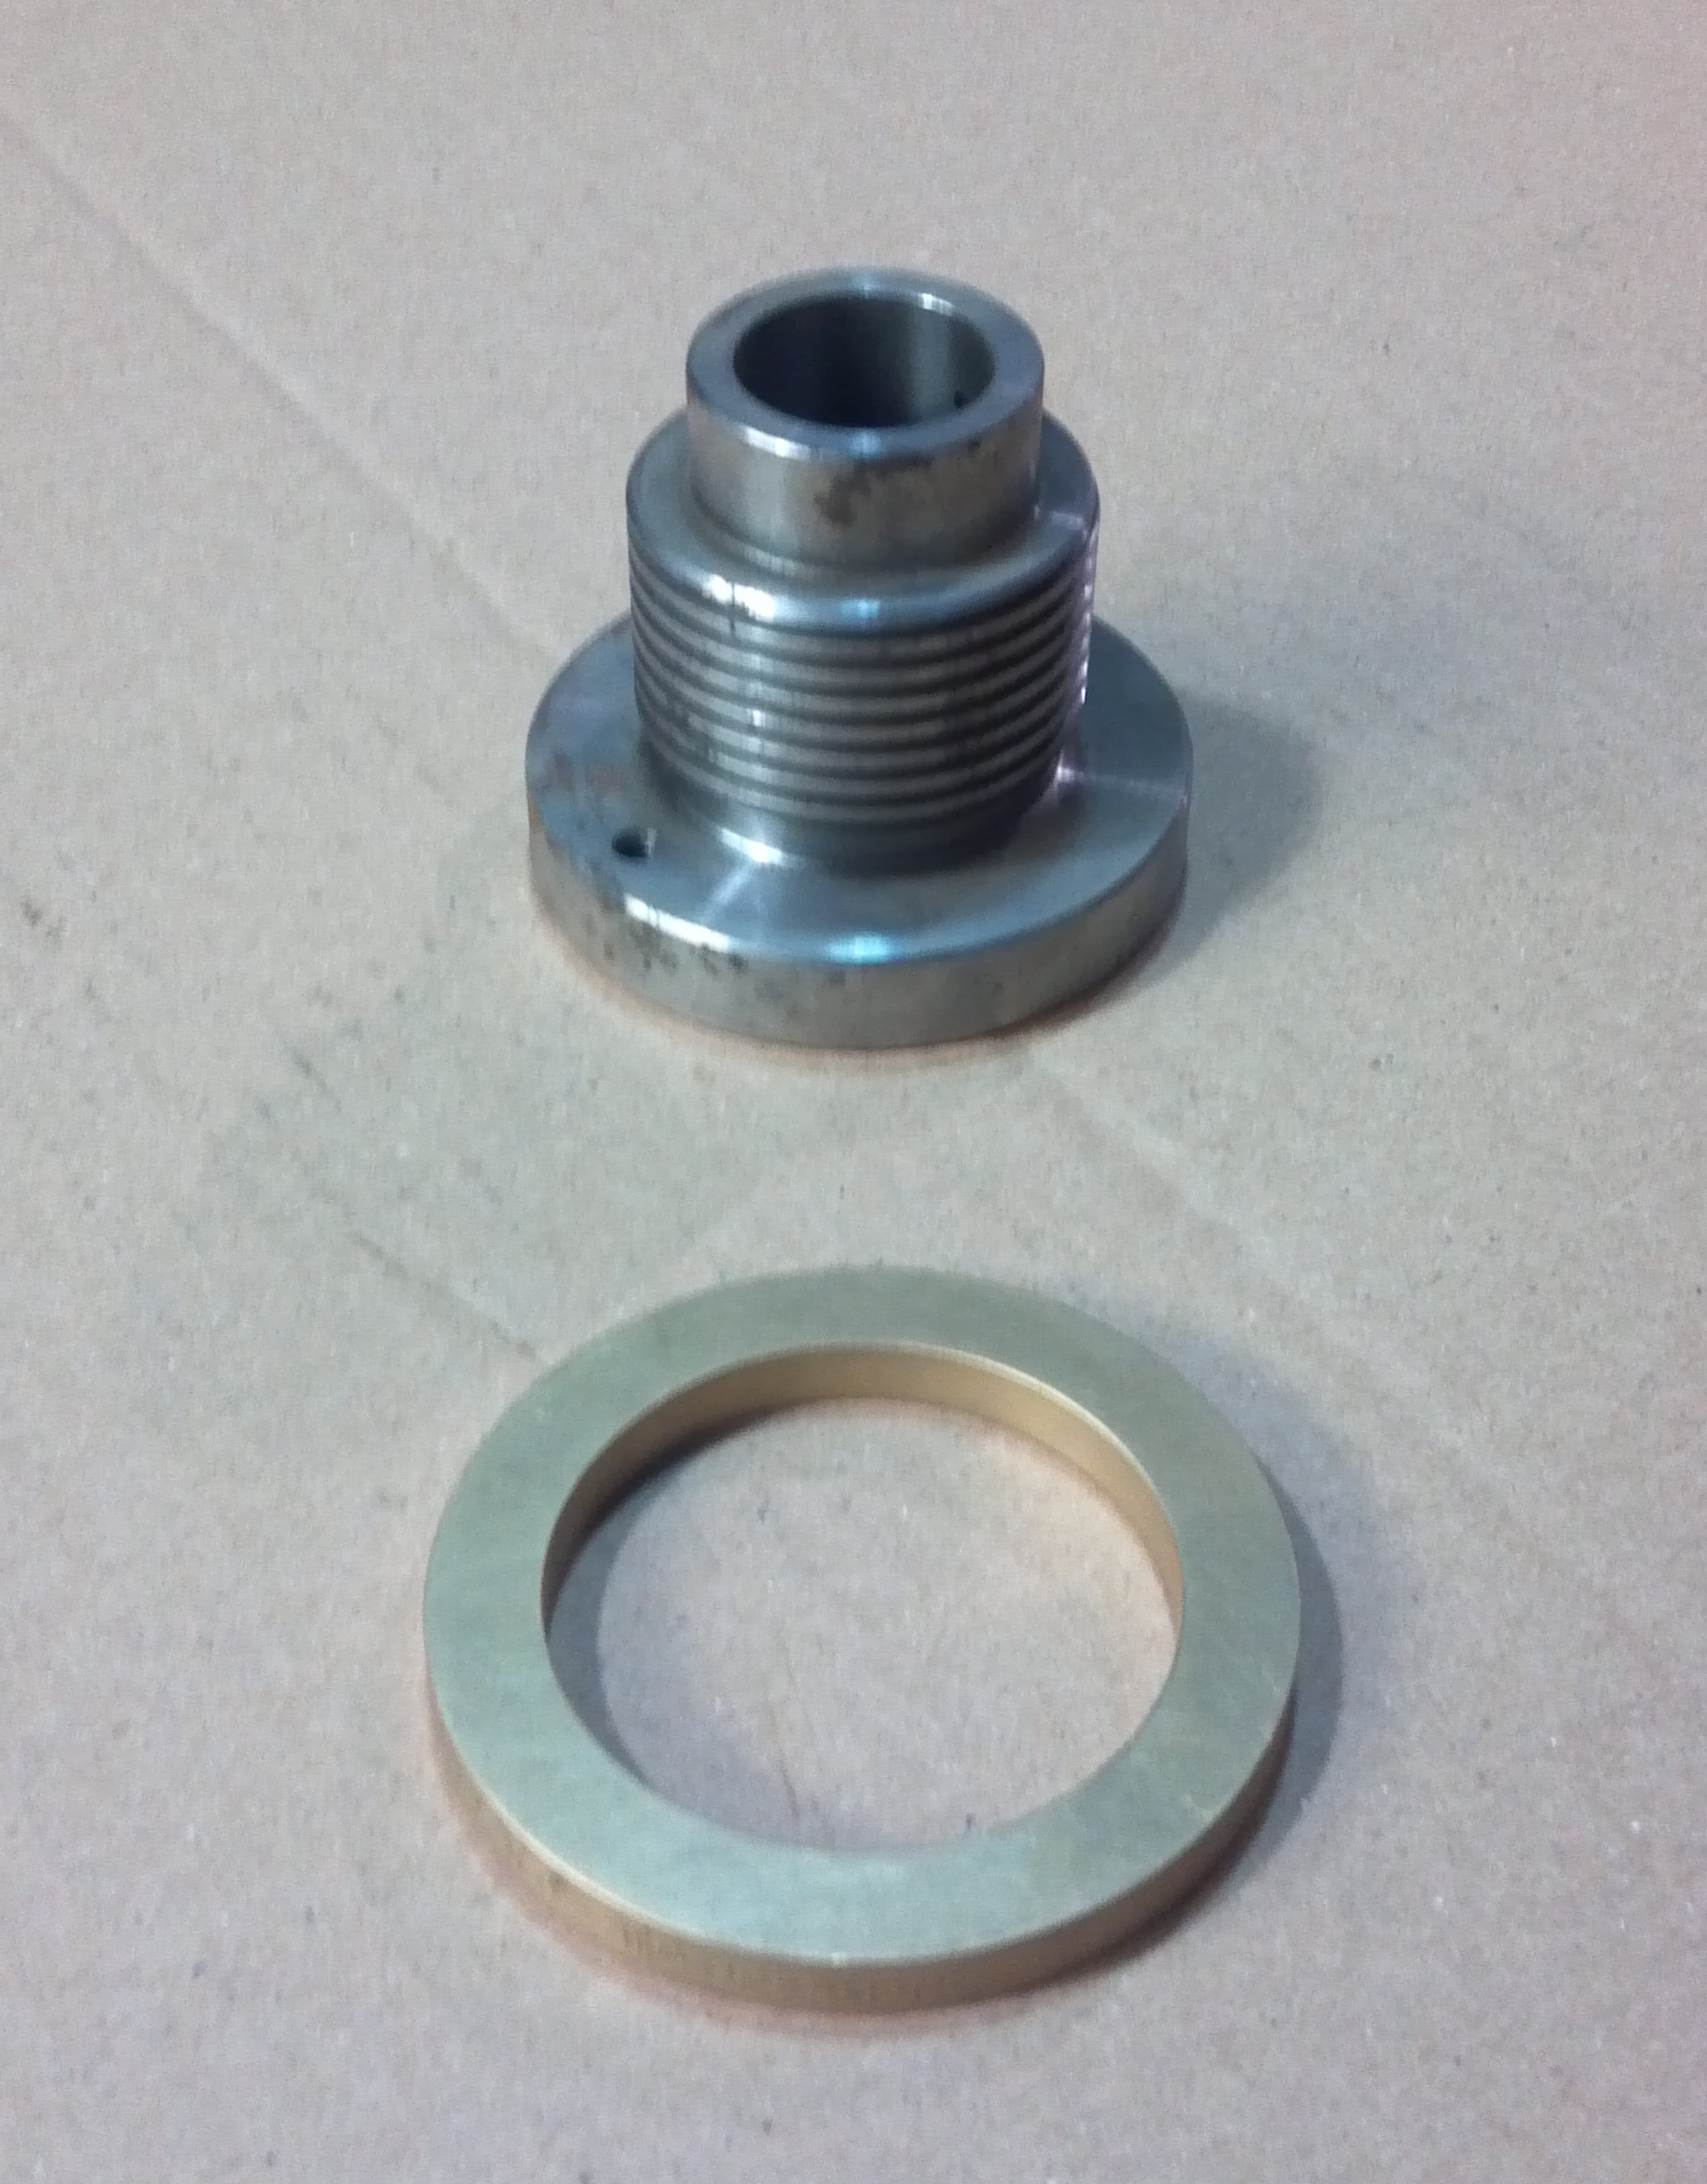 packing gland spacer1